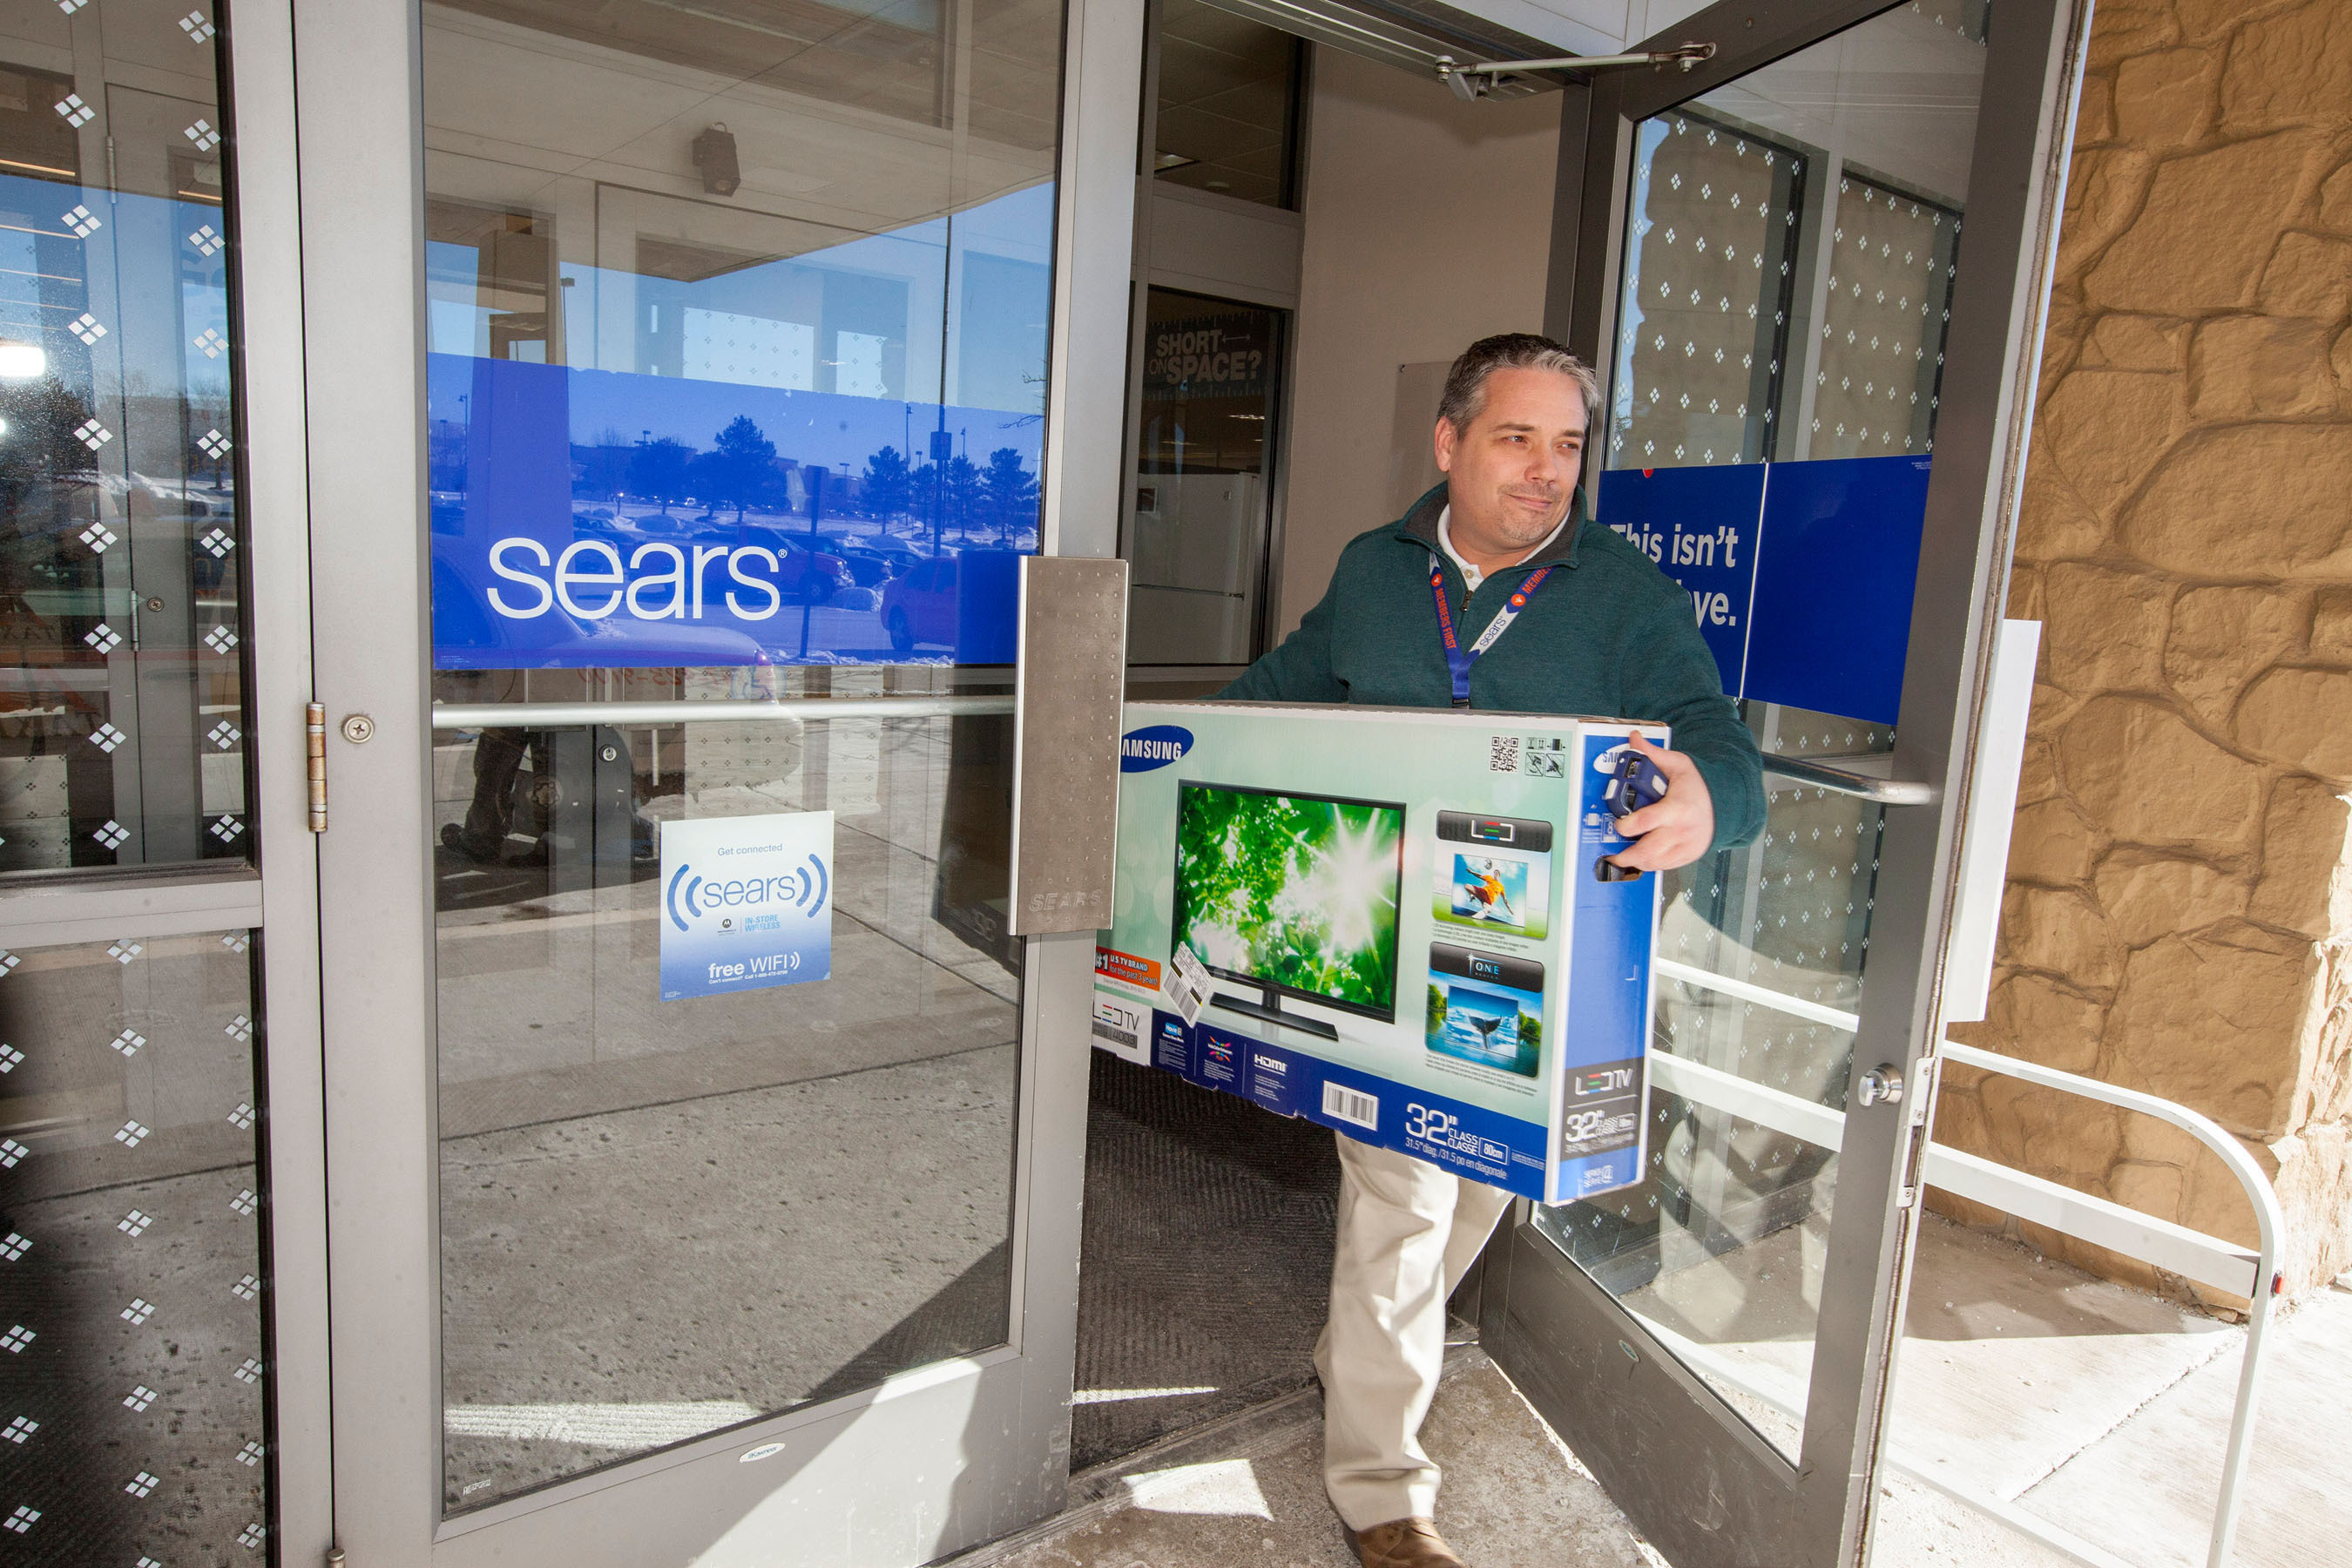 Sears new In-Vehicle Pickup feature on its Shop Your Way mobile app allows Shop Your Way members to pick up their online purchases at their local Sears store within five minutes of arrival, without ever leaving the car. (PRNewsFoto/Sears, Roebuck and Co.) (PRNewsFoto/SEARS, ROEBUCK AND CO.)